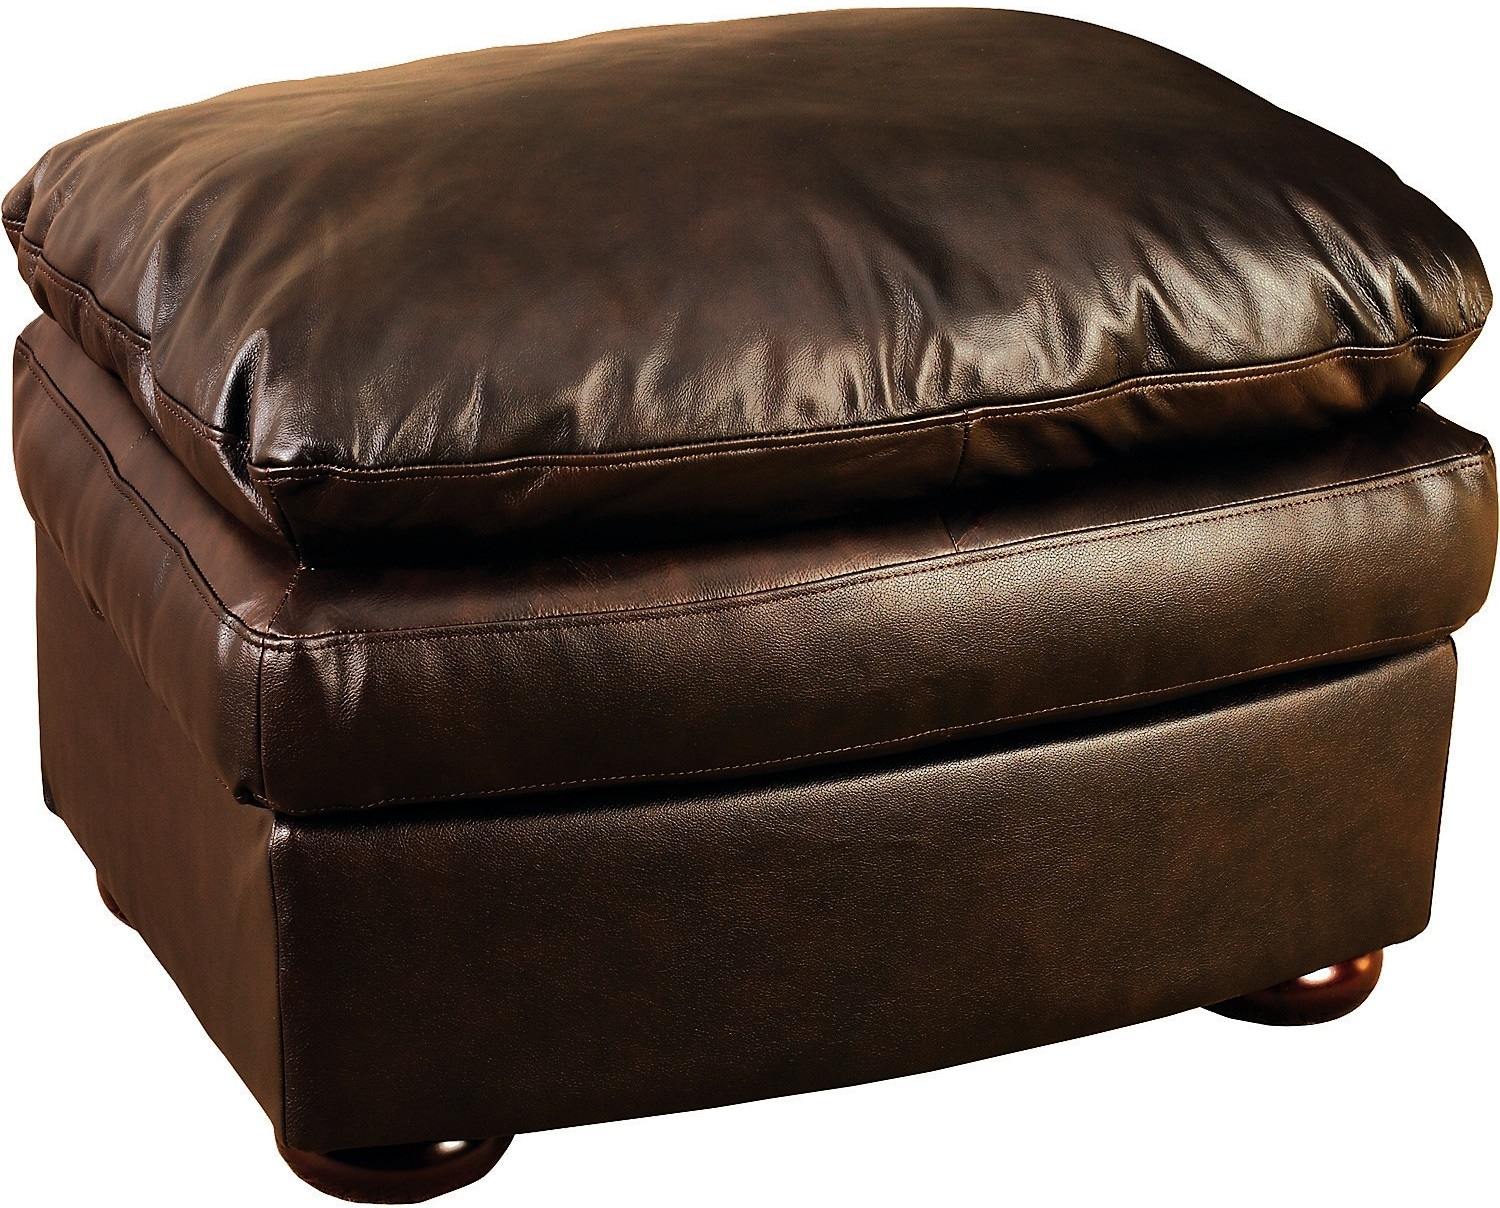 Living Room Furniture - Brown 100% Genuine Leather Ottoman